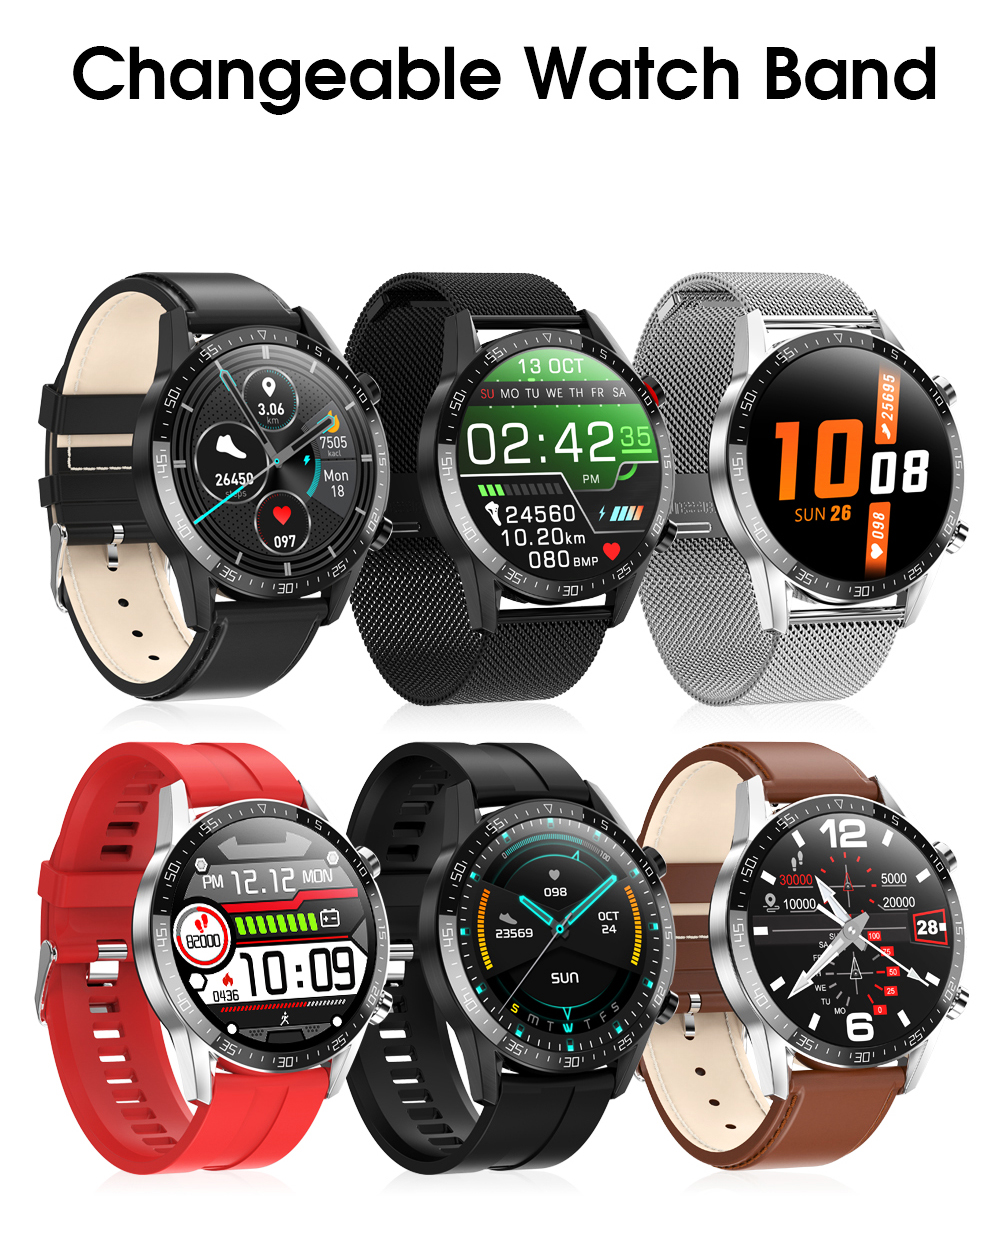 H22f760d05cbf46569c0ba04874d60cf5l Timewolf IP68 Smart Watch Men Android 2020 Full Touch Smartwatch Men Women Smart Watch For Huawei Xiaomi Apple IOS Android Phone